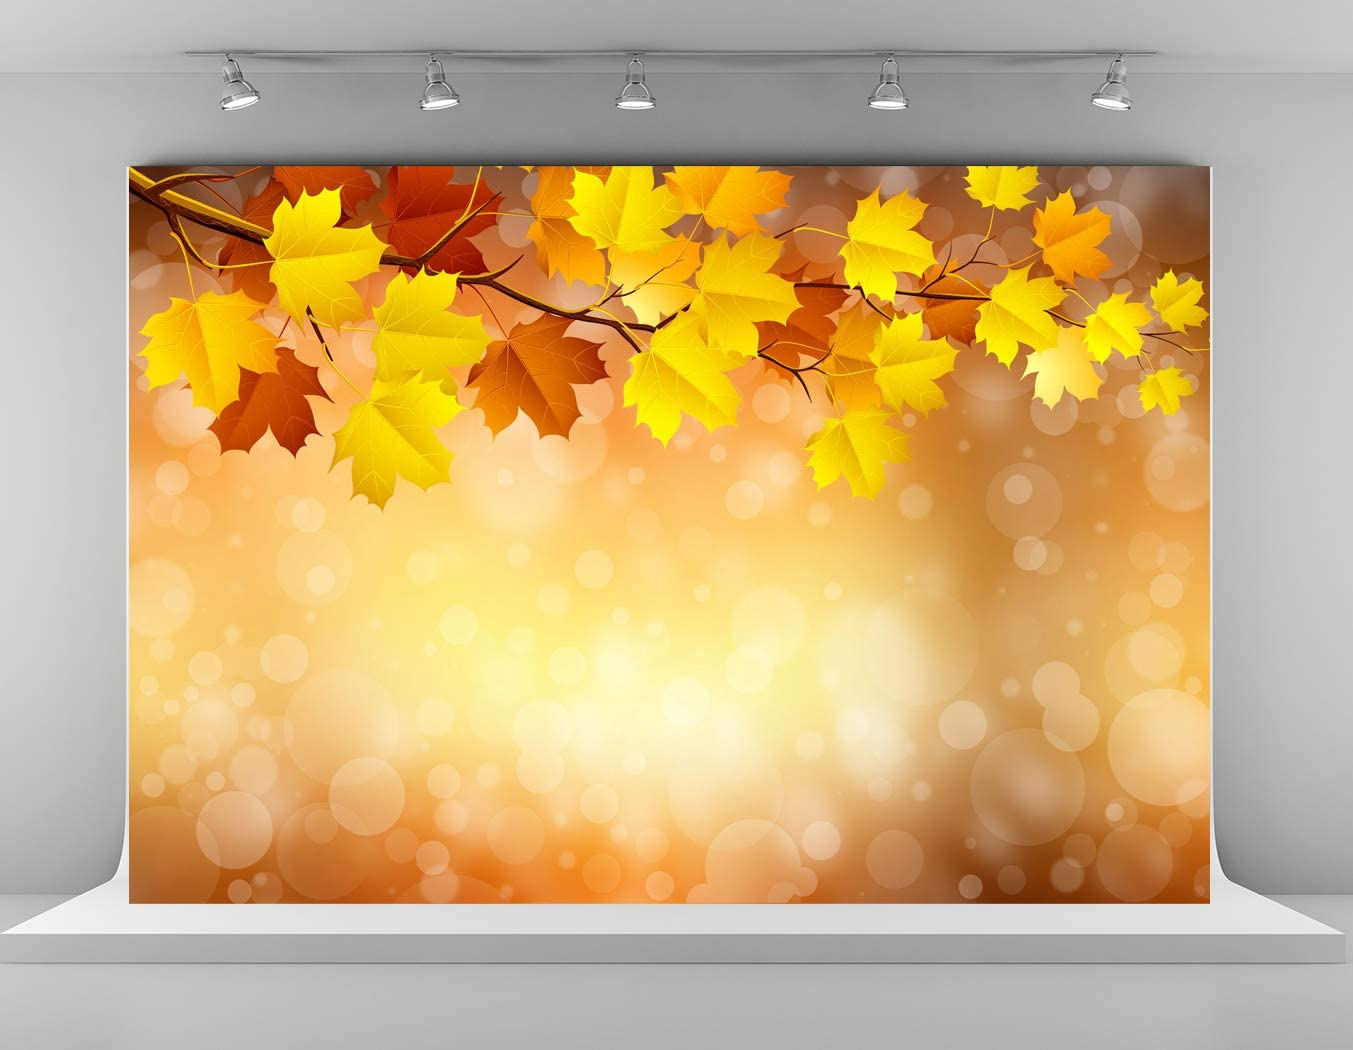 Kate 10x6.5ft Autumn Photography Backdrops Fall Maple Leaves Backgrounds Children Kids Photo Background Microfiber Party Decoration Backdrop for Photoshoot